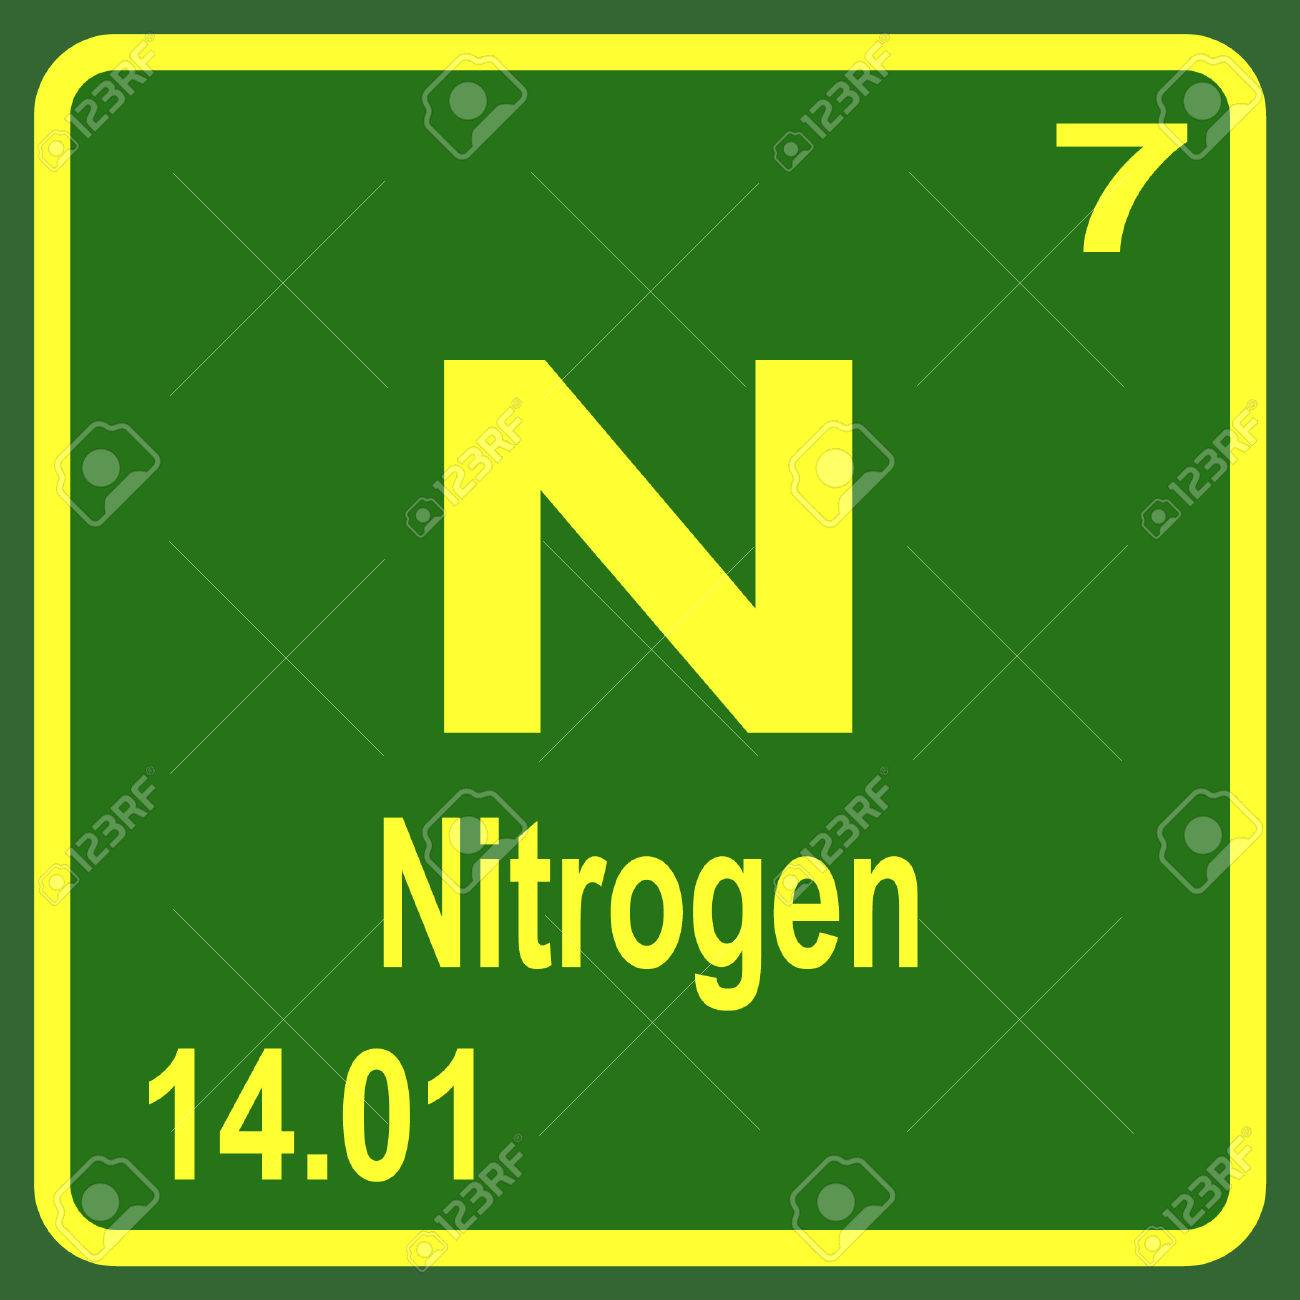 Periodic table of elements nitrogen royalty free cliparts vectors periodic table of elements nitrogen stock vector 53900234 urtaz Image collections